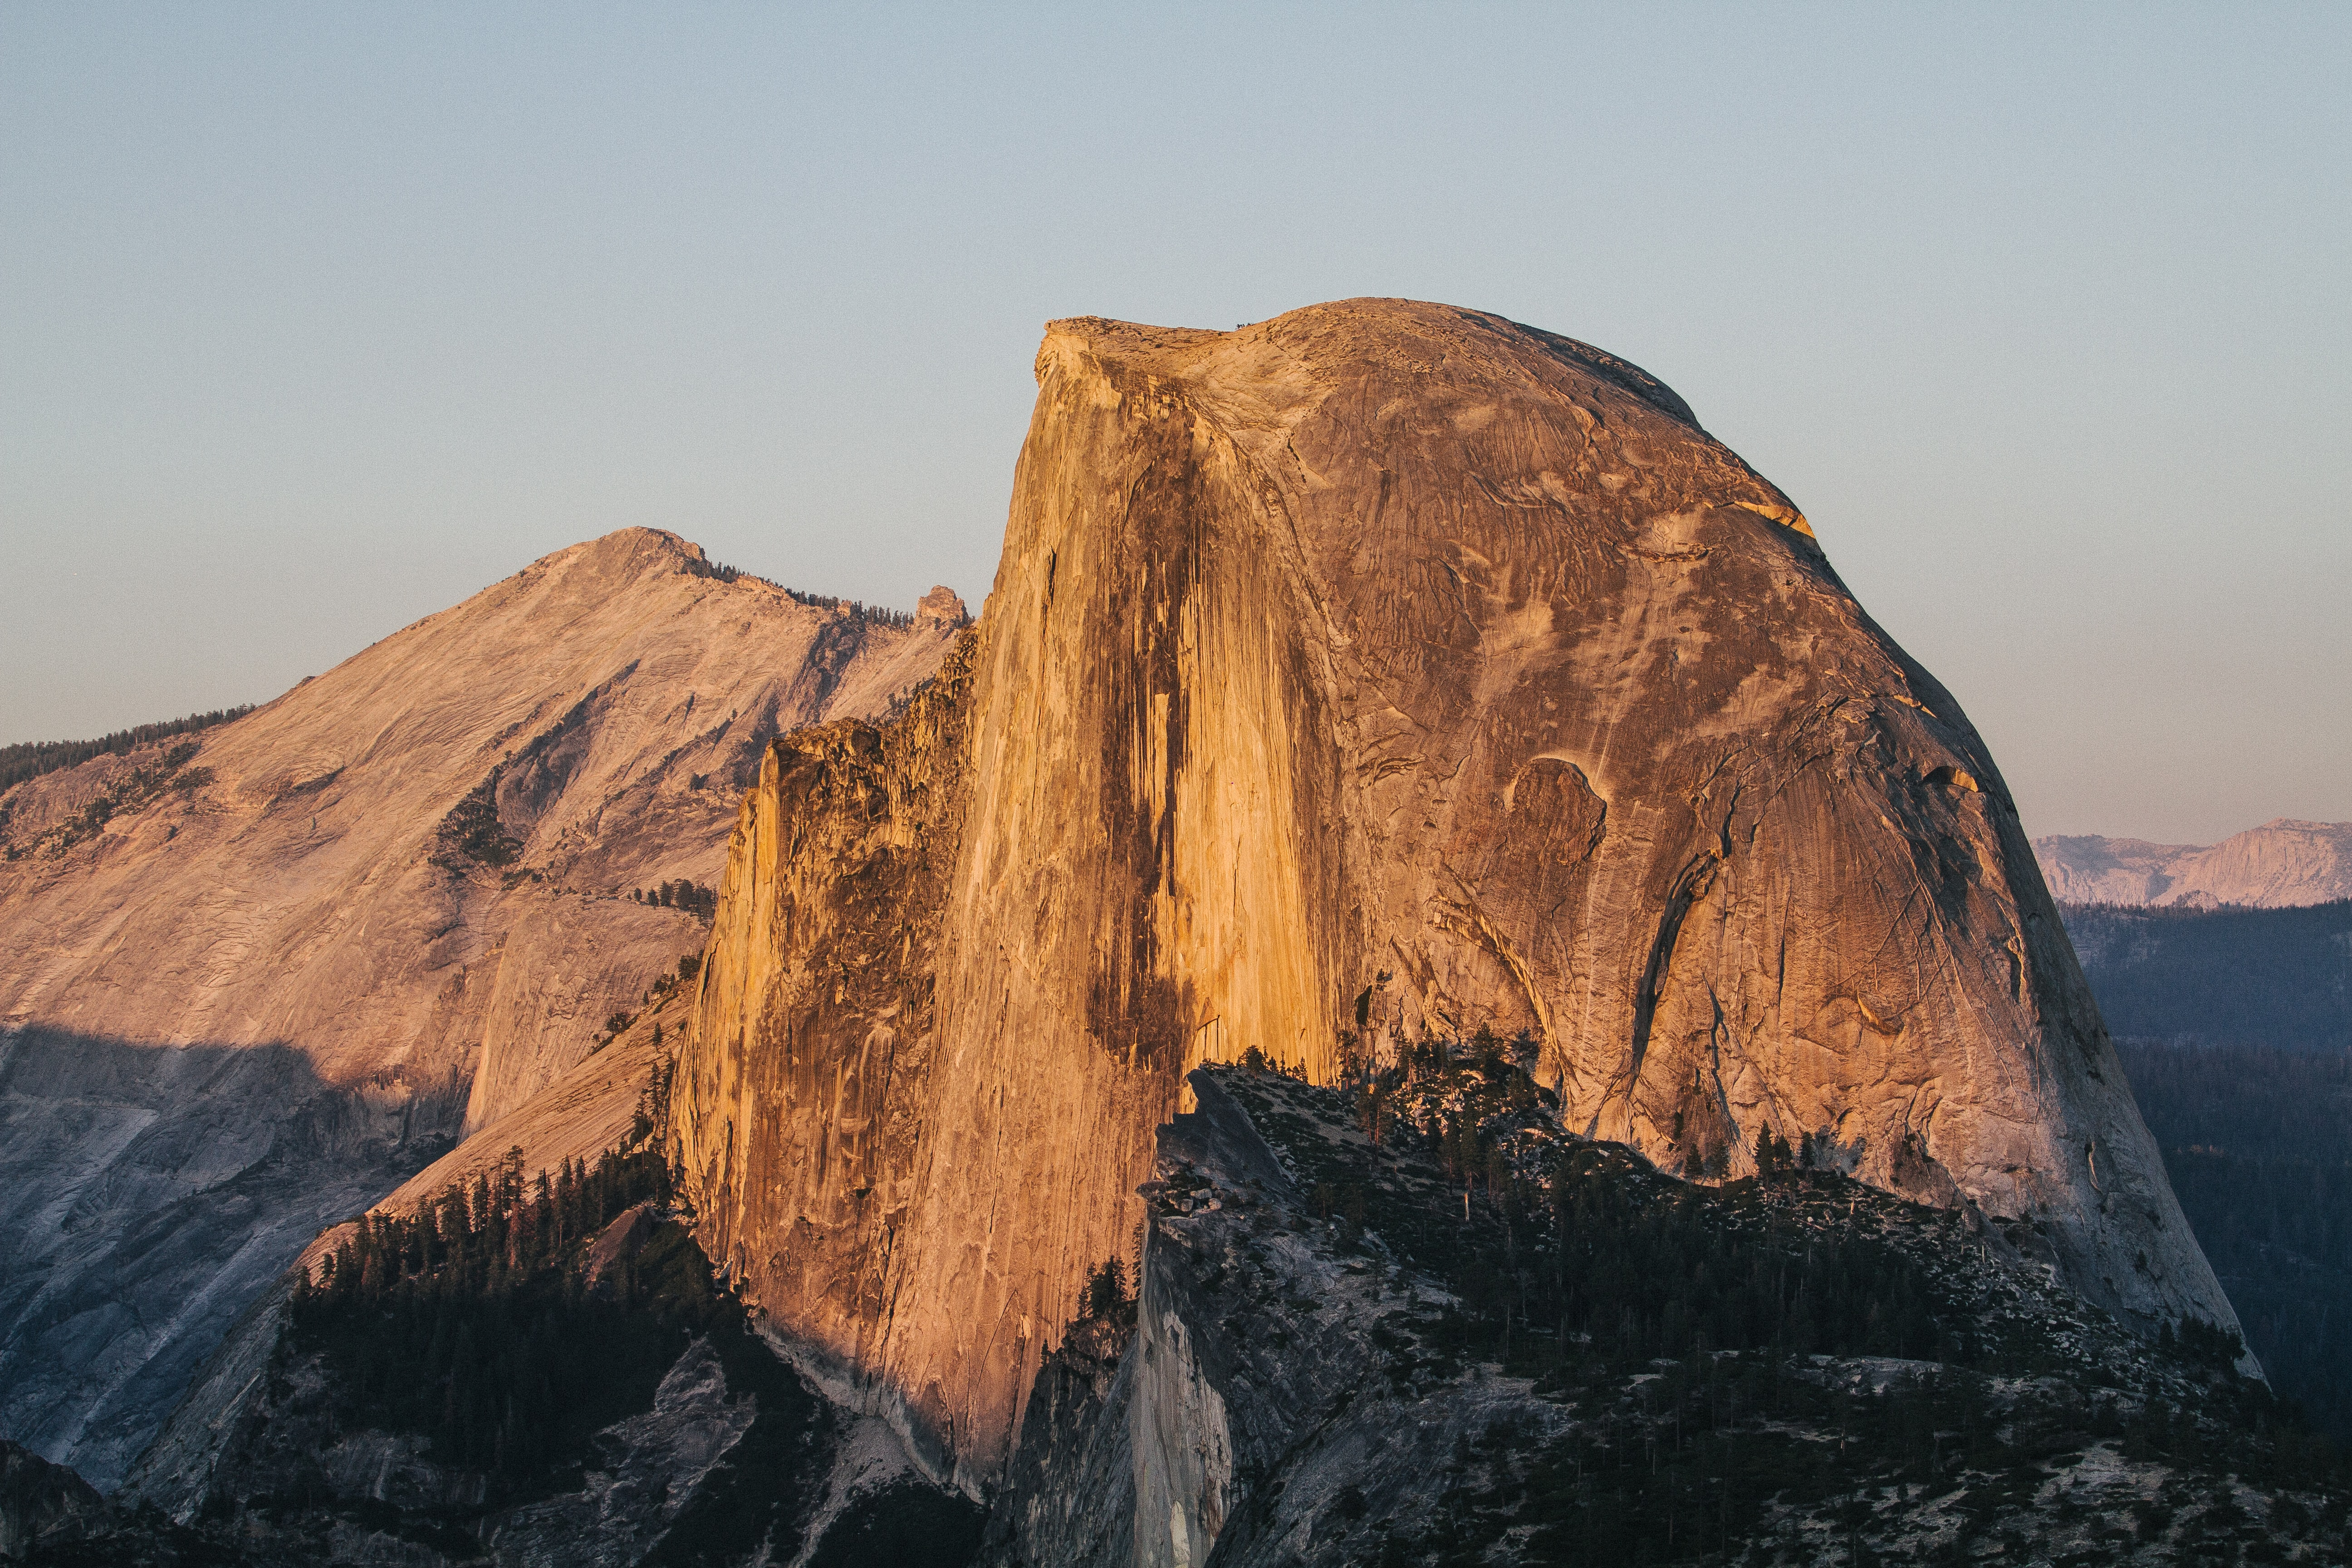 Rocky mountain cliffs of Half Dome at Yosemite National Park illuminated by sunset